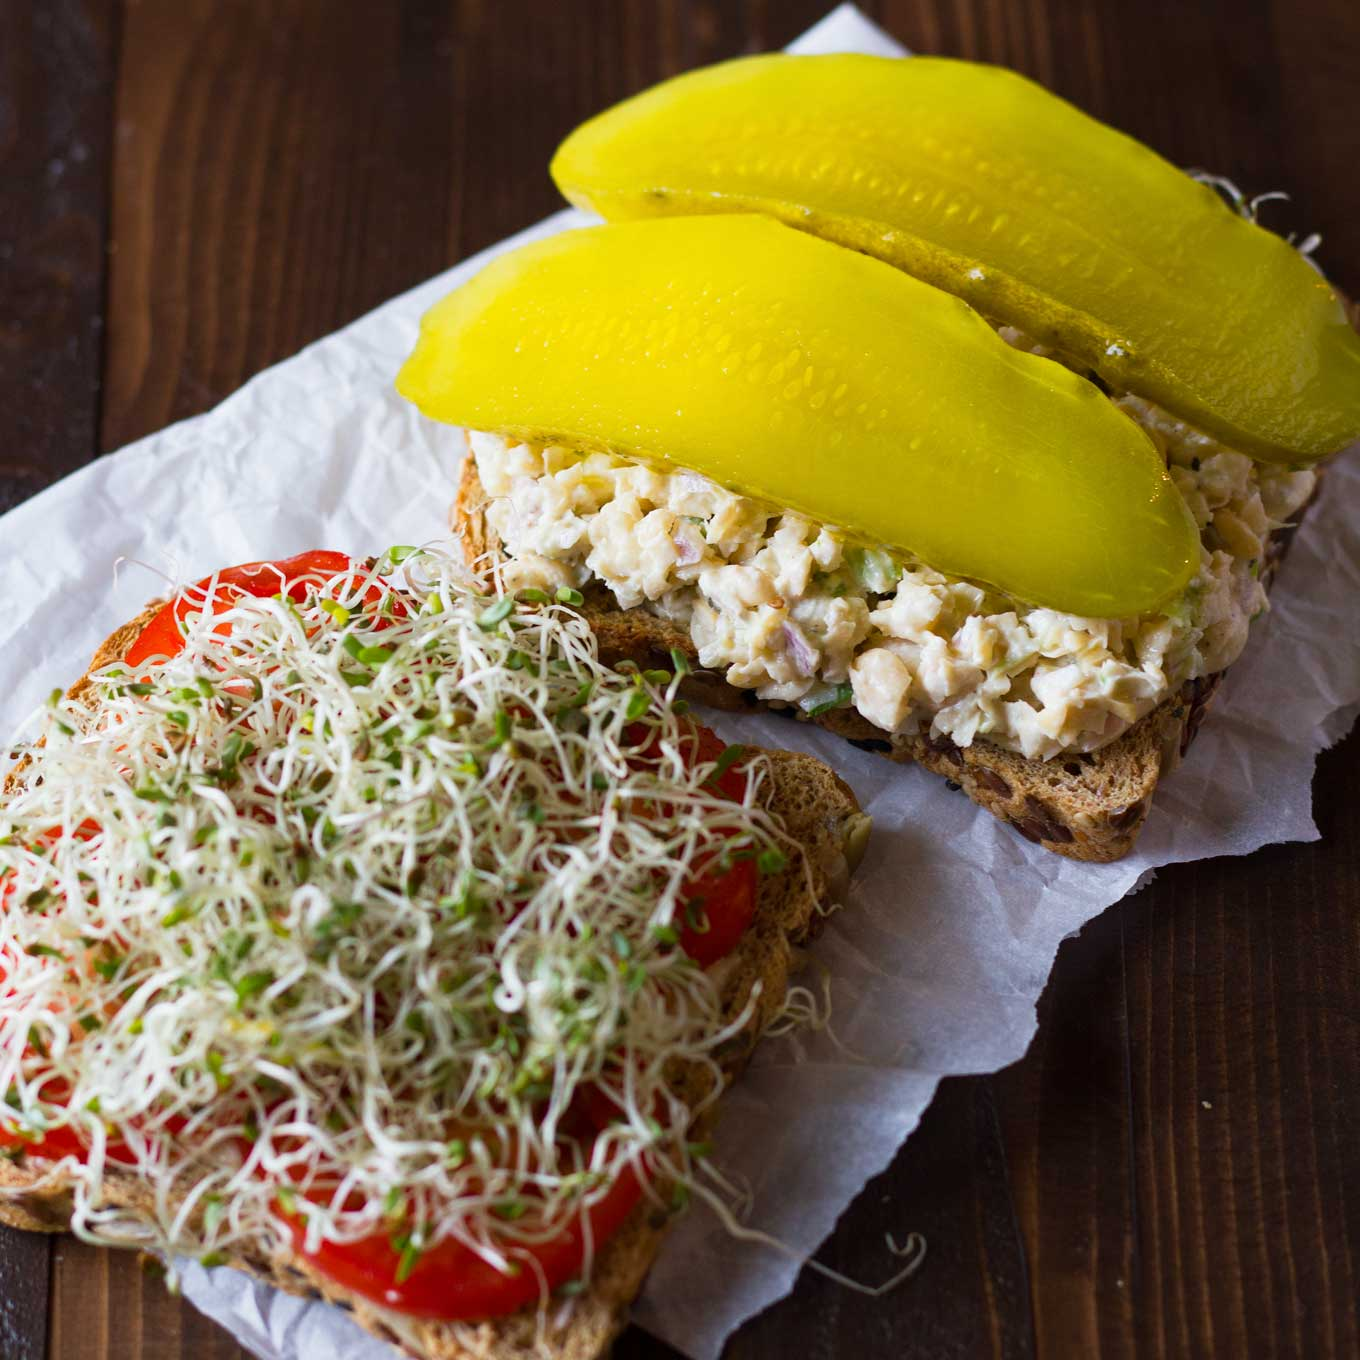 These chickpea salad sandwiches are packed with protein and fiber, and are oil-free to boot! Made with an unusual technique to keep the texture from being mushy. Vegan, oil-free. https://eatwithinyourmeans.com